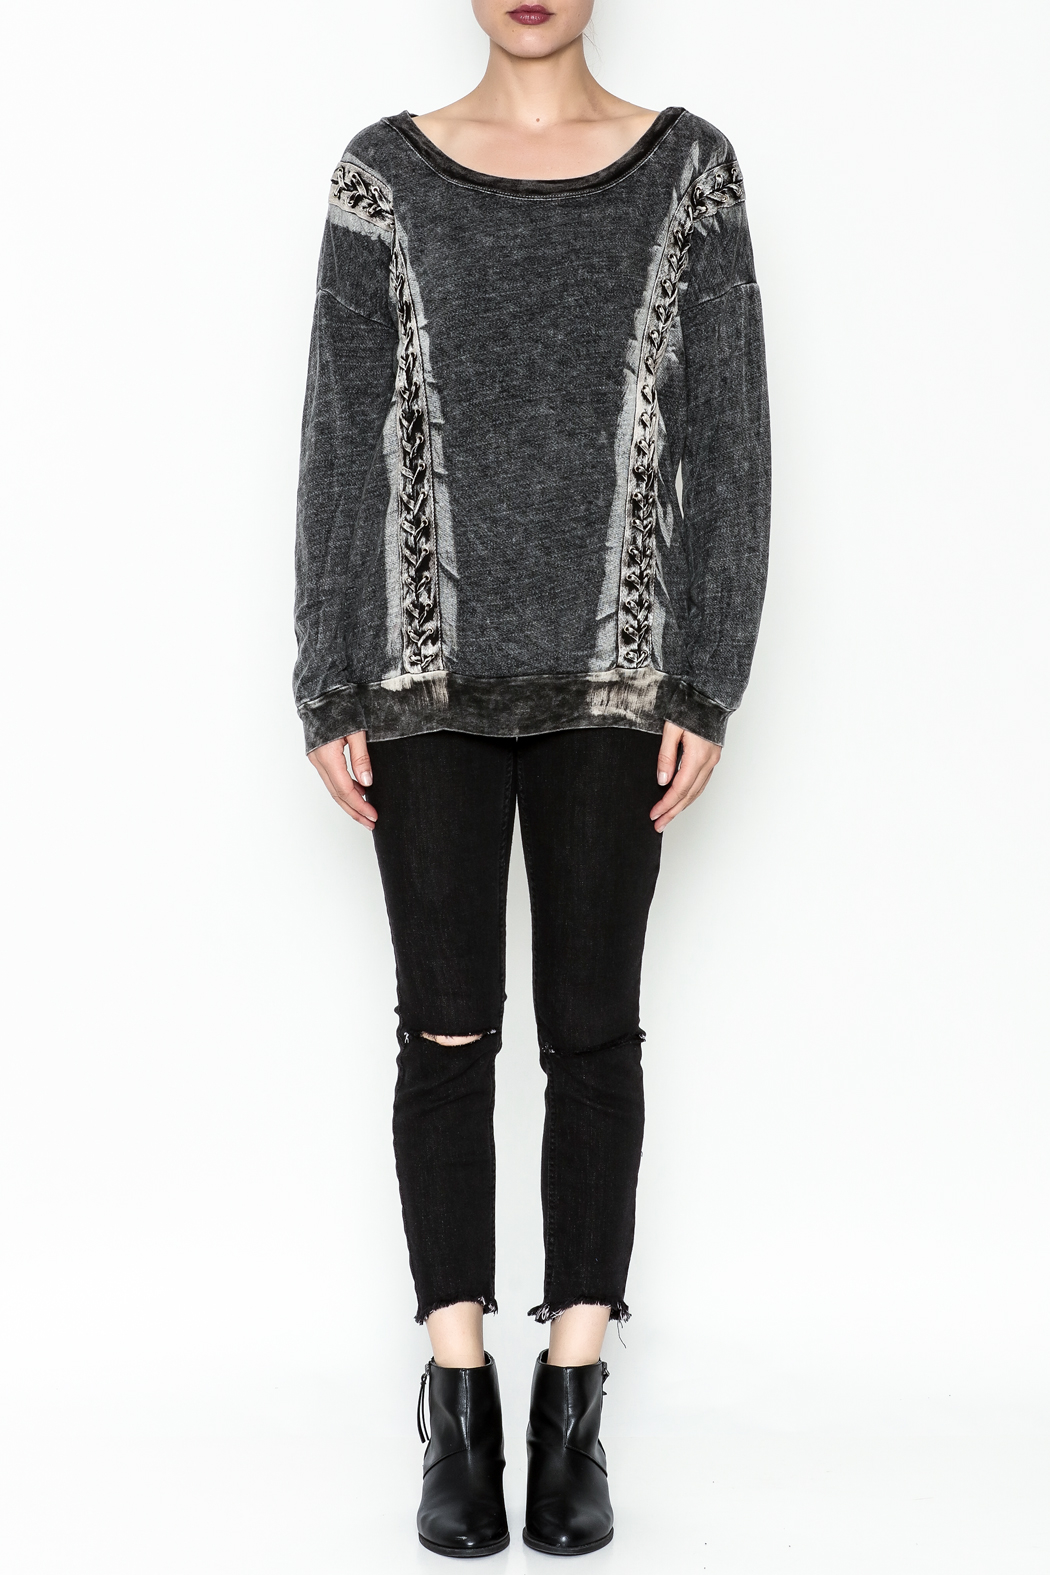 T. Party Mineral Wash Lace Sweatshirt - Front Cropped Image